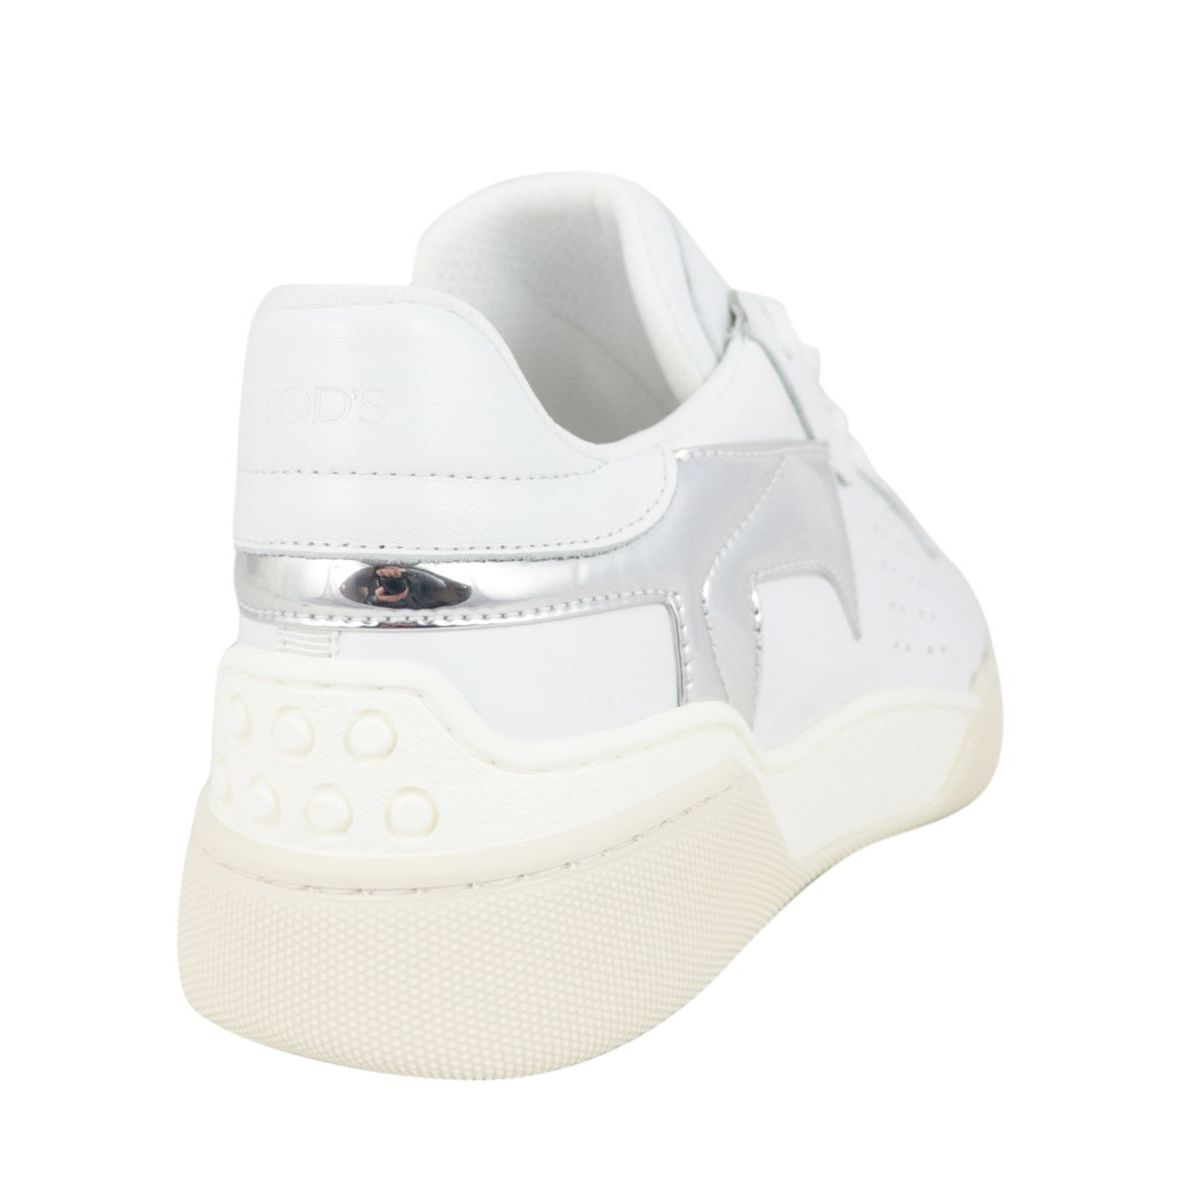 Cassette 31C T Max sneakers Optical white Tod's